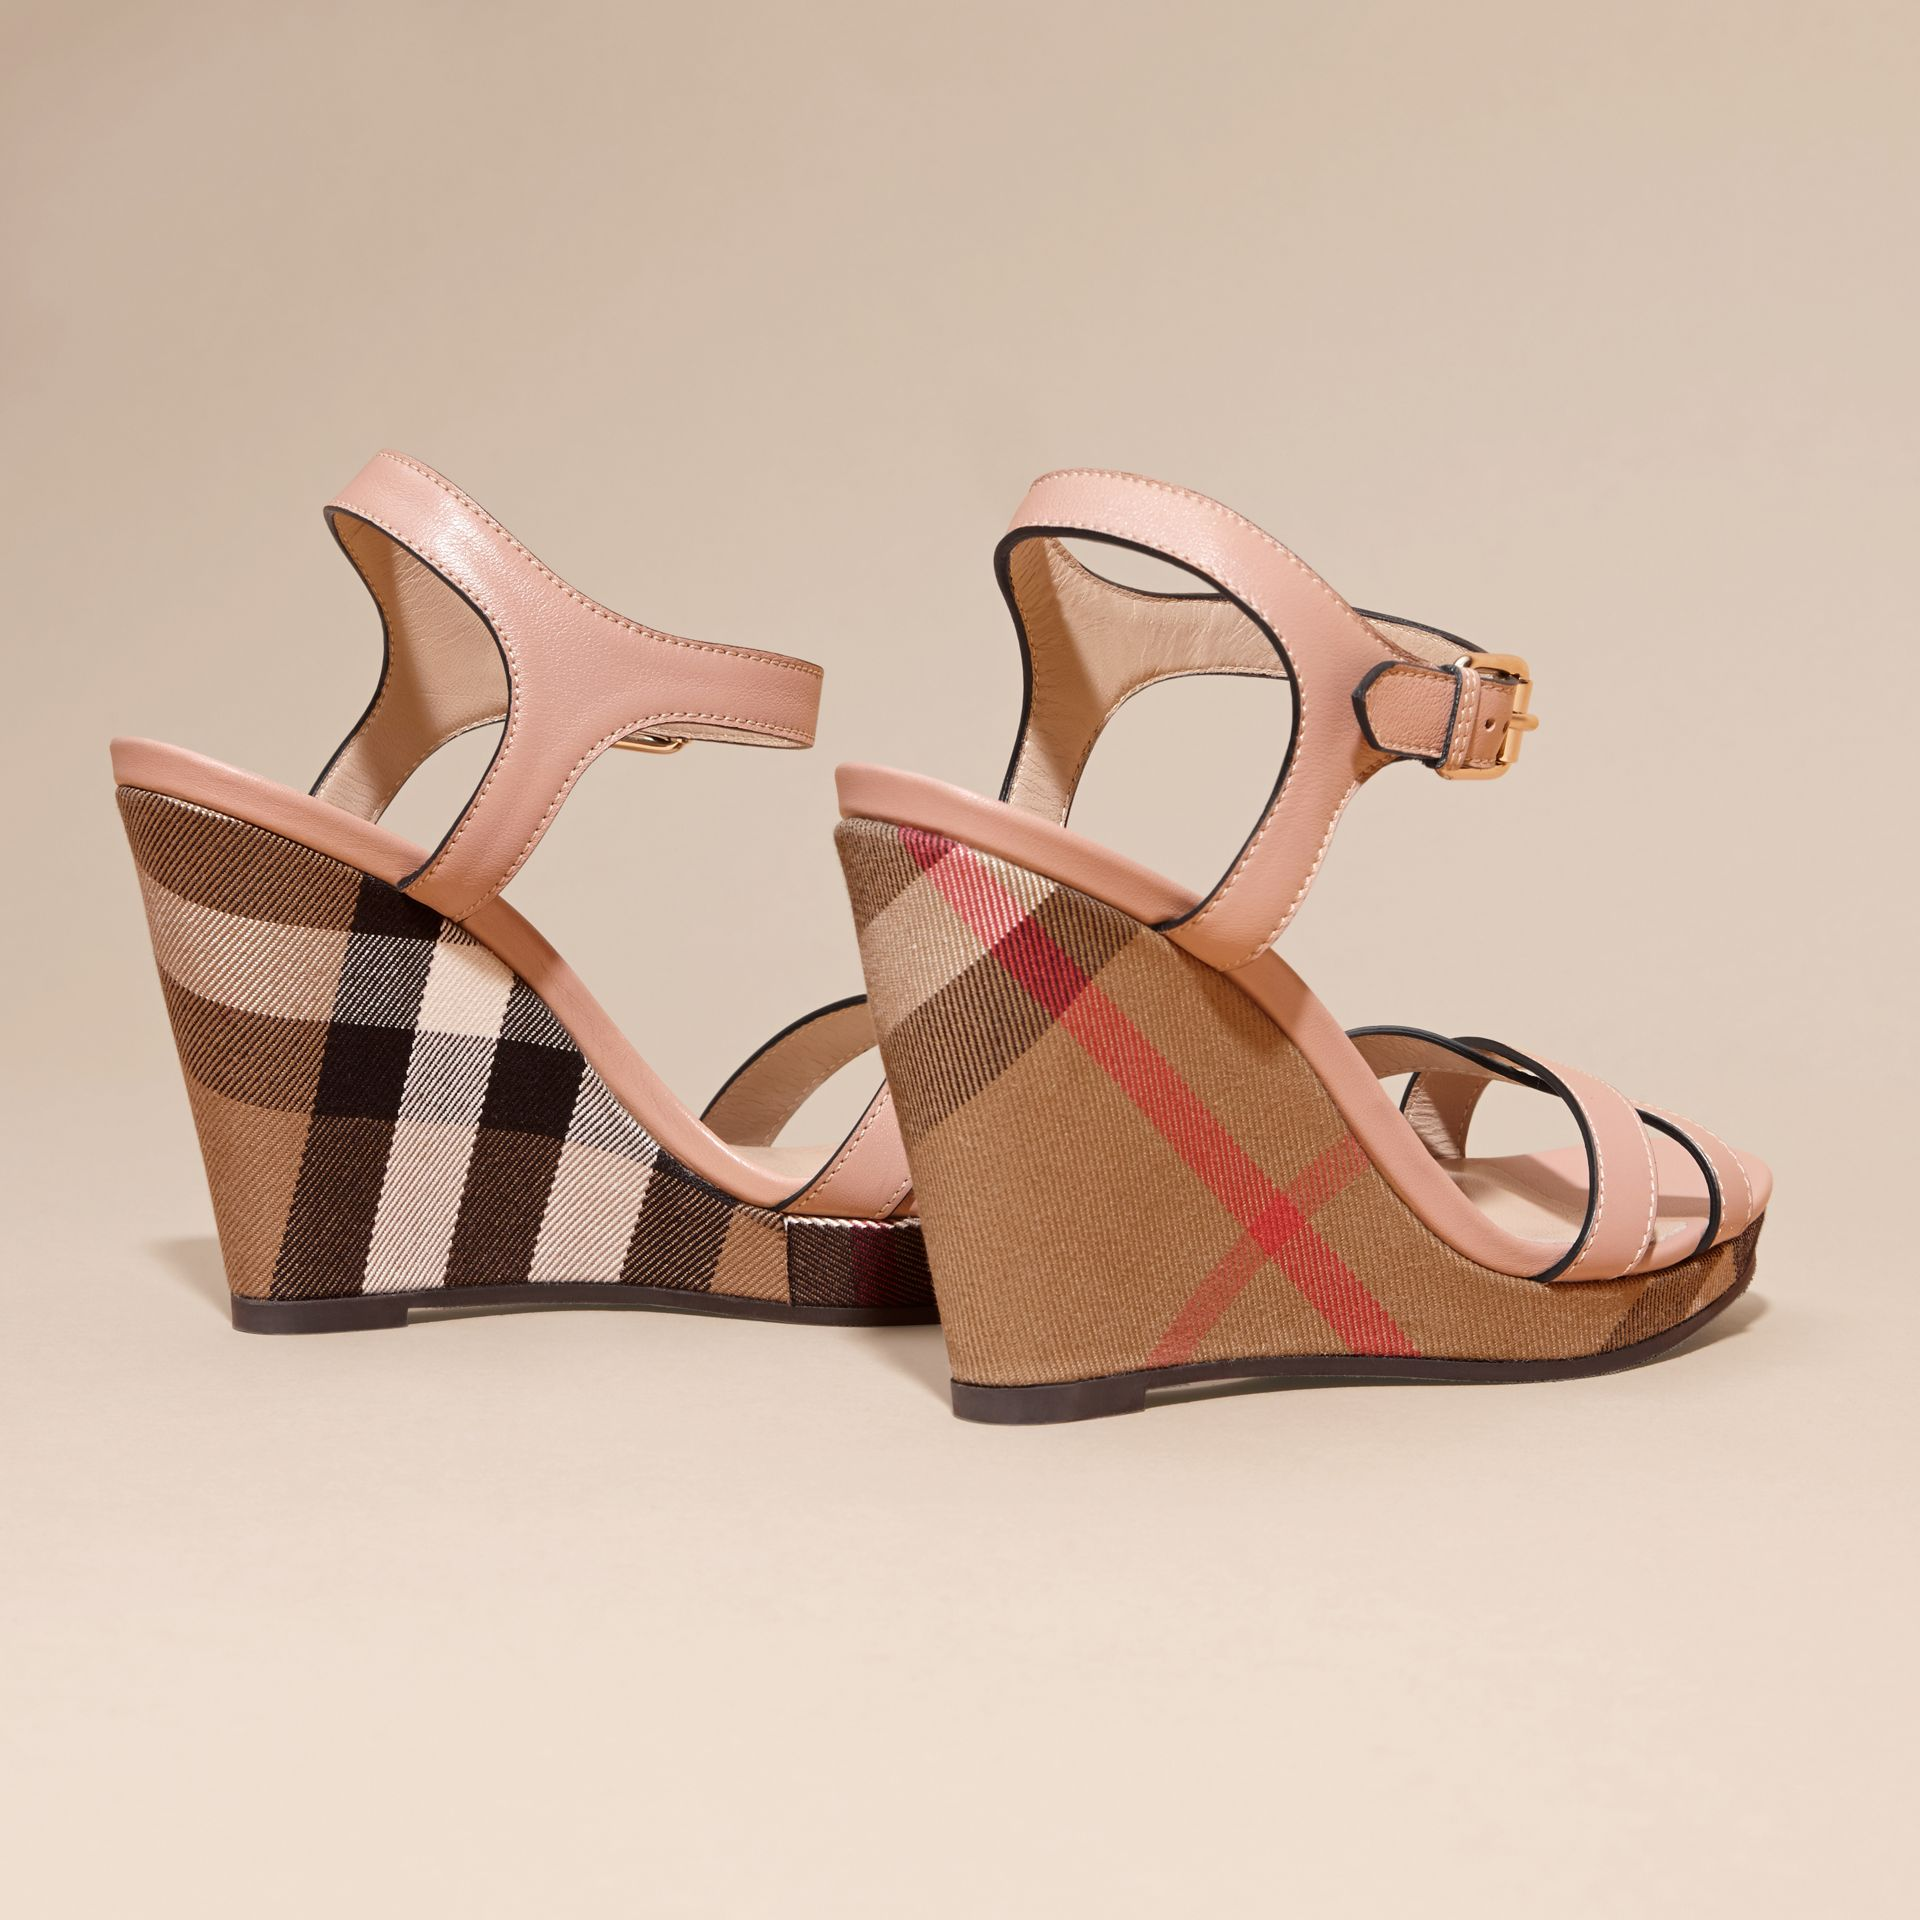 House Check Detail Leather Wedge Sandals - Women | Burberry - gallery image 4